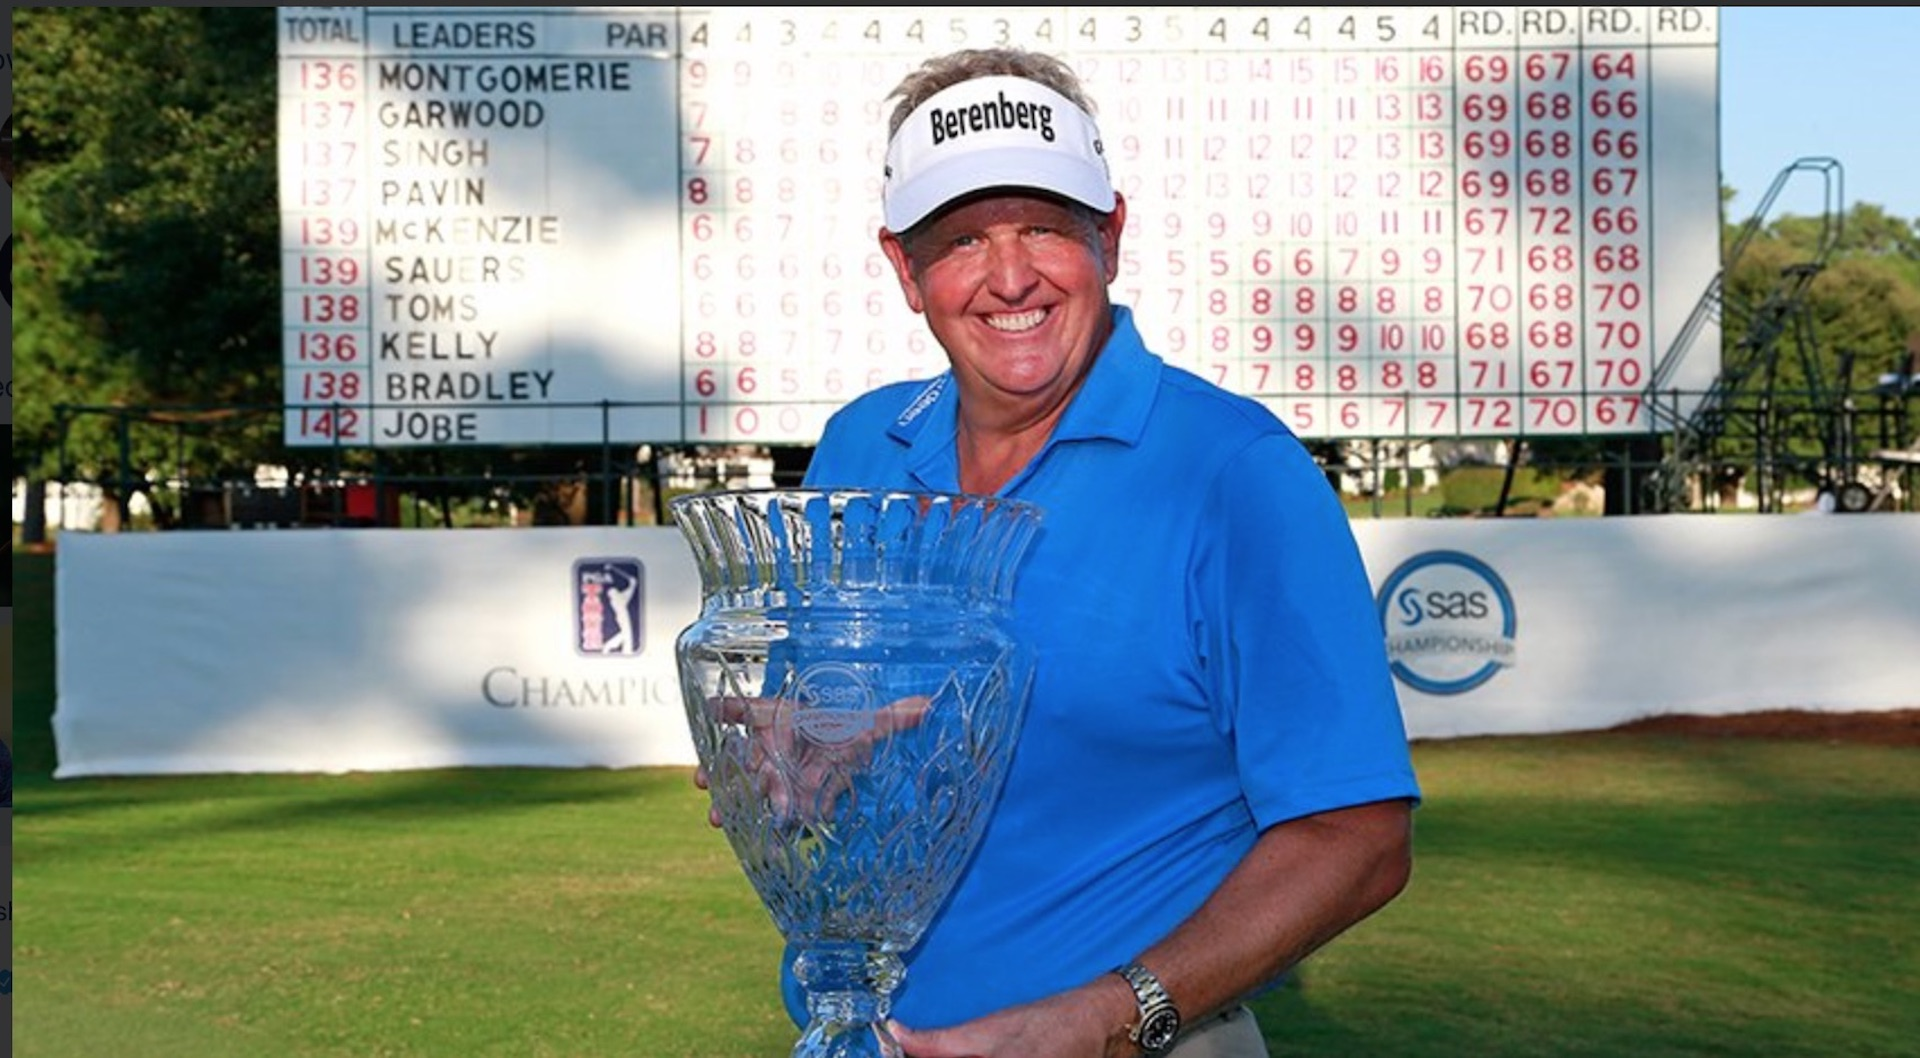 Colin Montgomerie claims second Champions Tour victory in 5 weeks